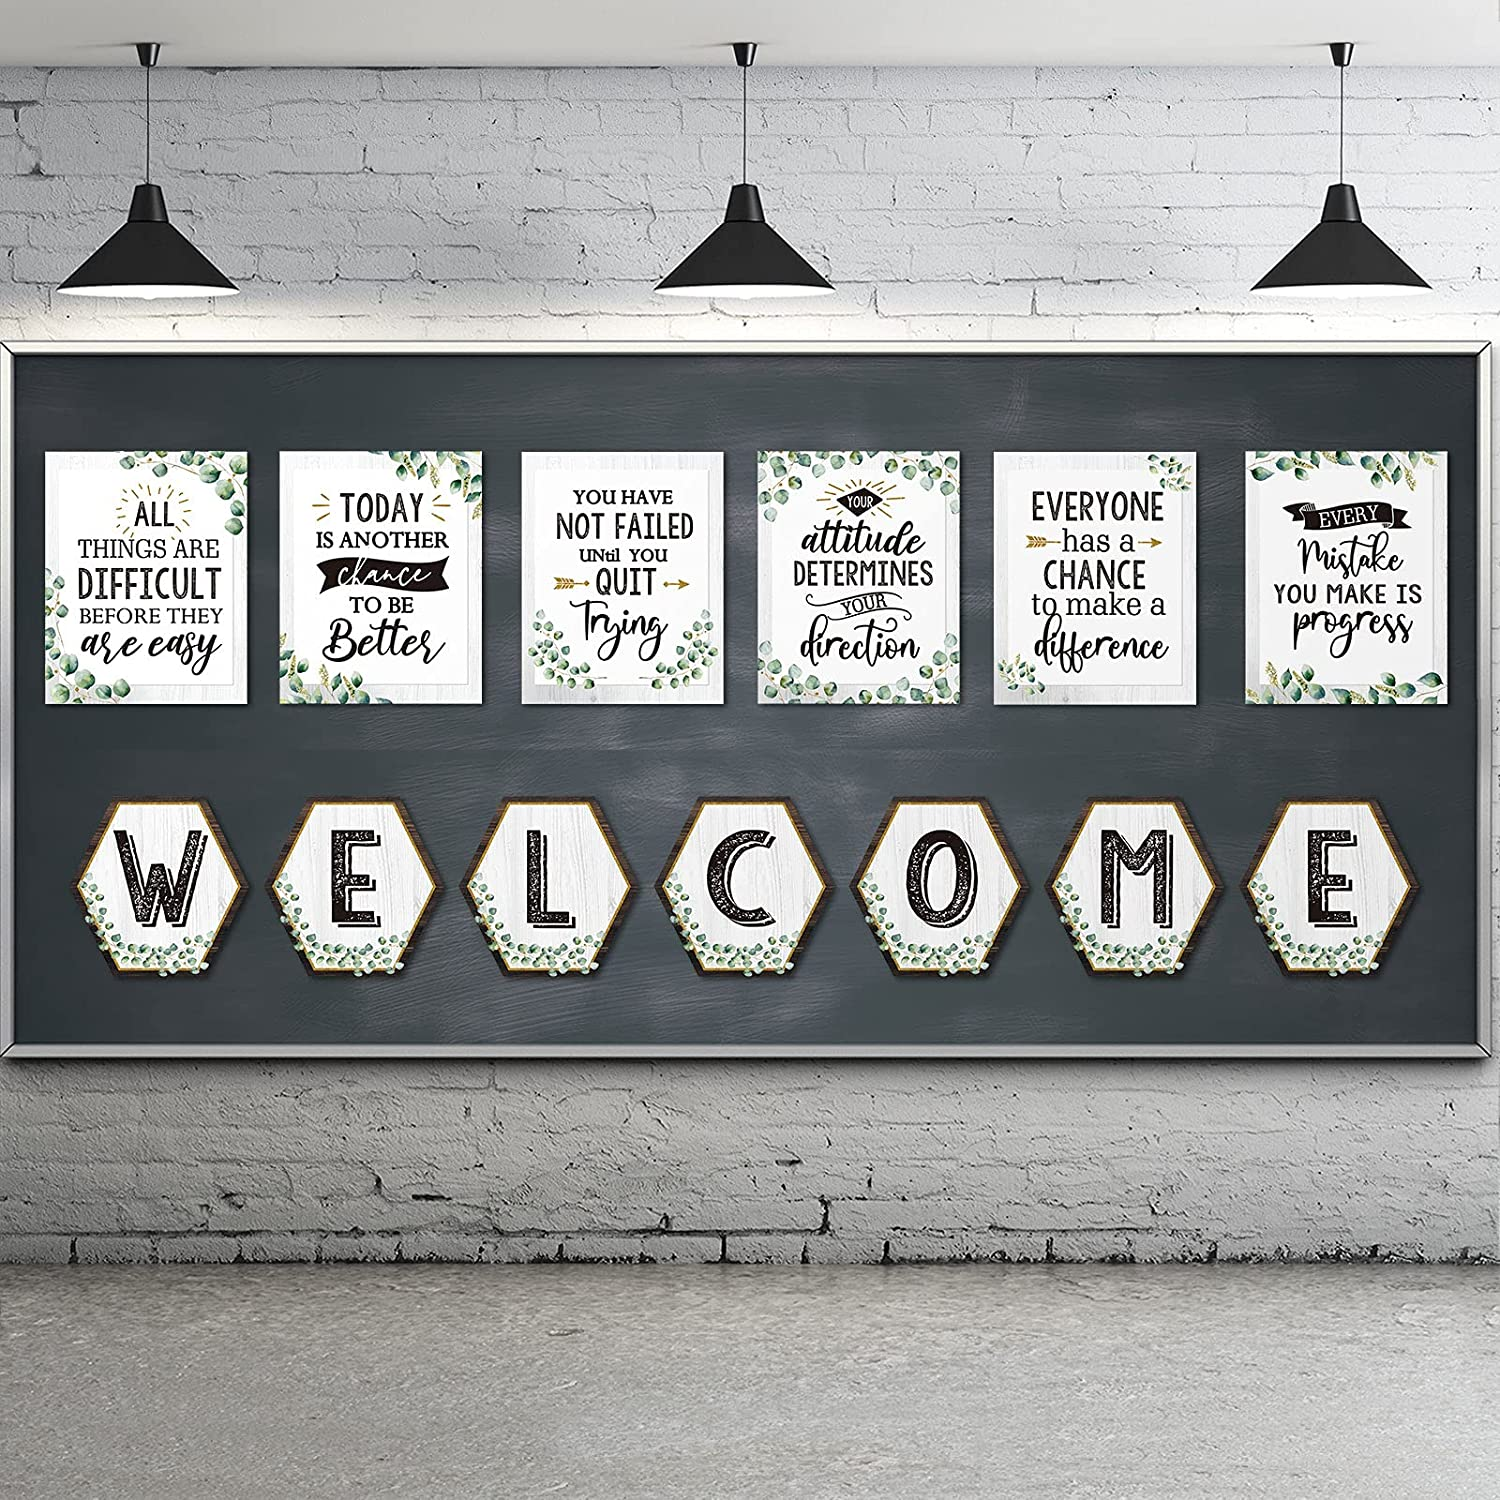 13 Pieces Eucalyptus Bulletin Board Poster Classroom Motivational Green Inspirational Quote Poster Eucalyptus Border Positive Education Poster Set with Welcome Letter School Office Wall Decors